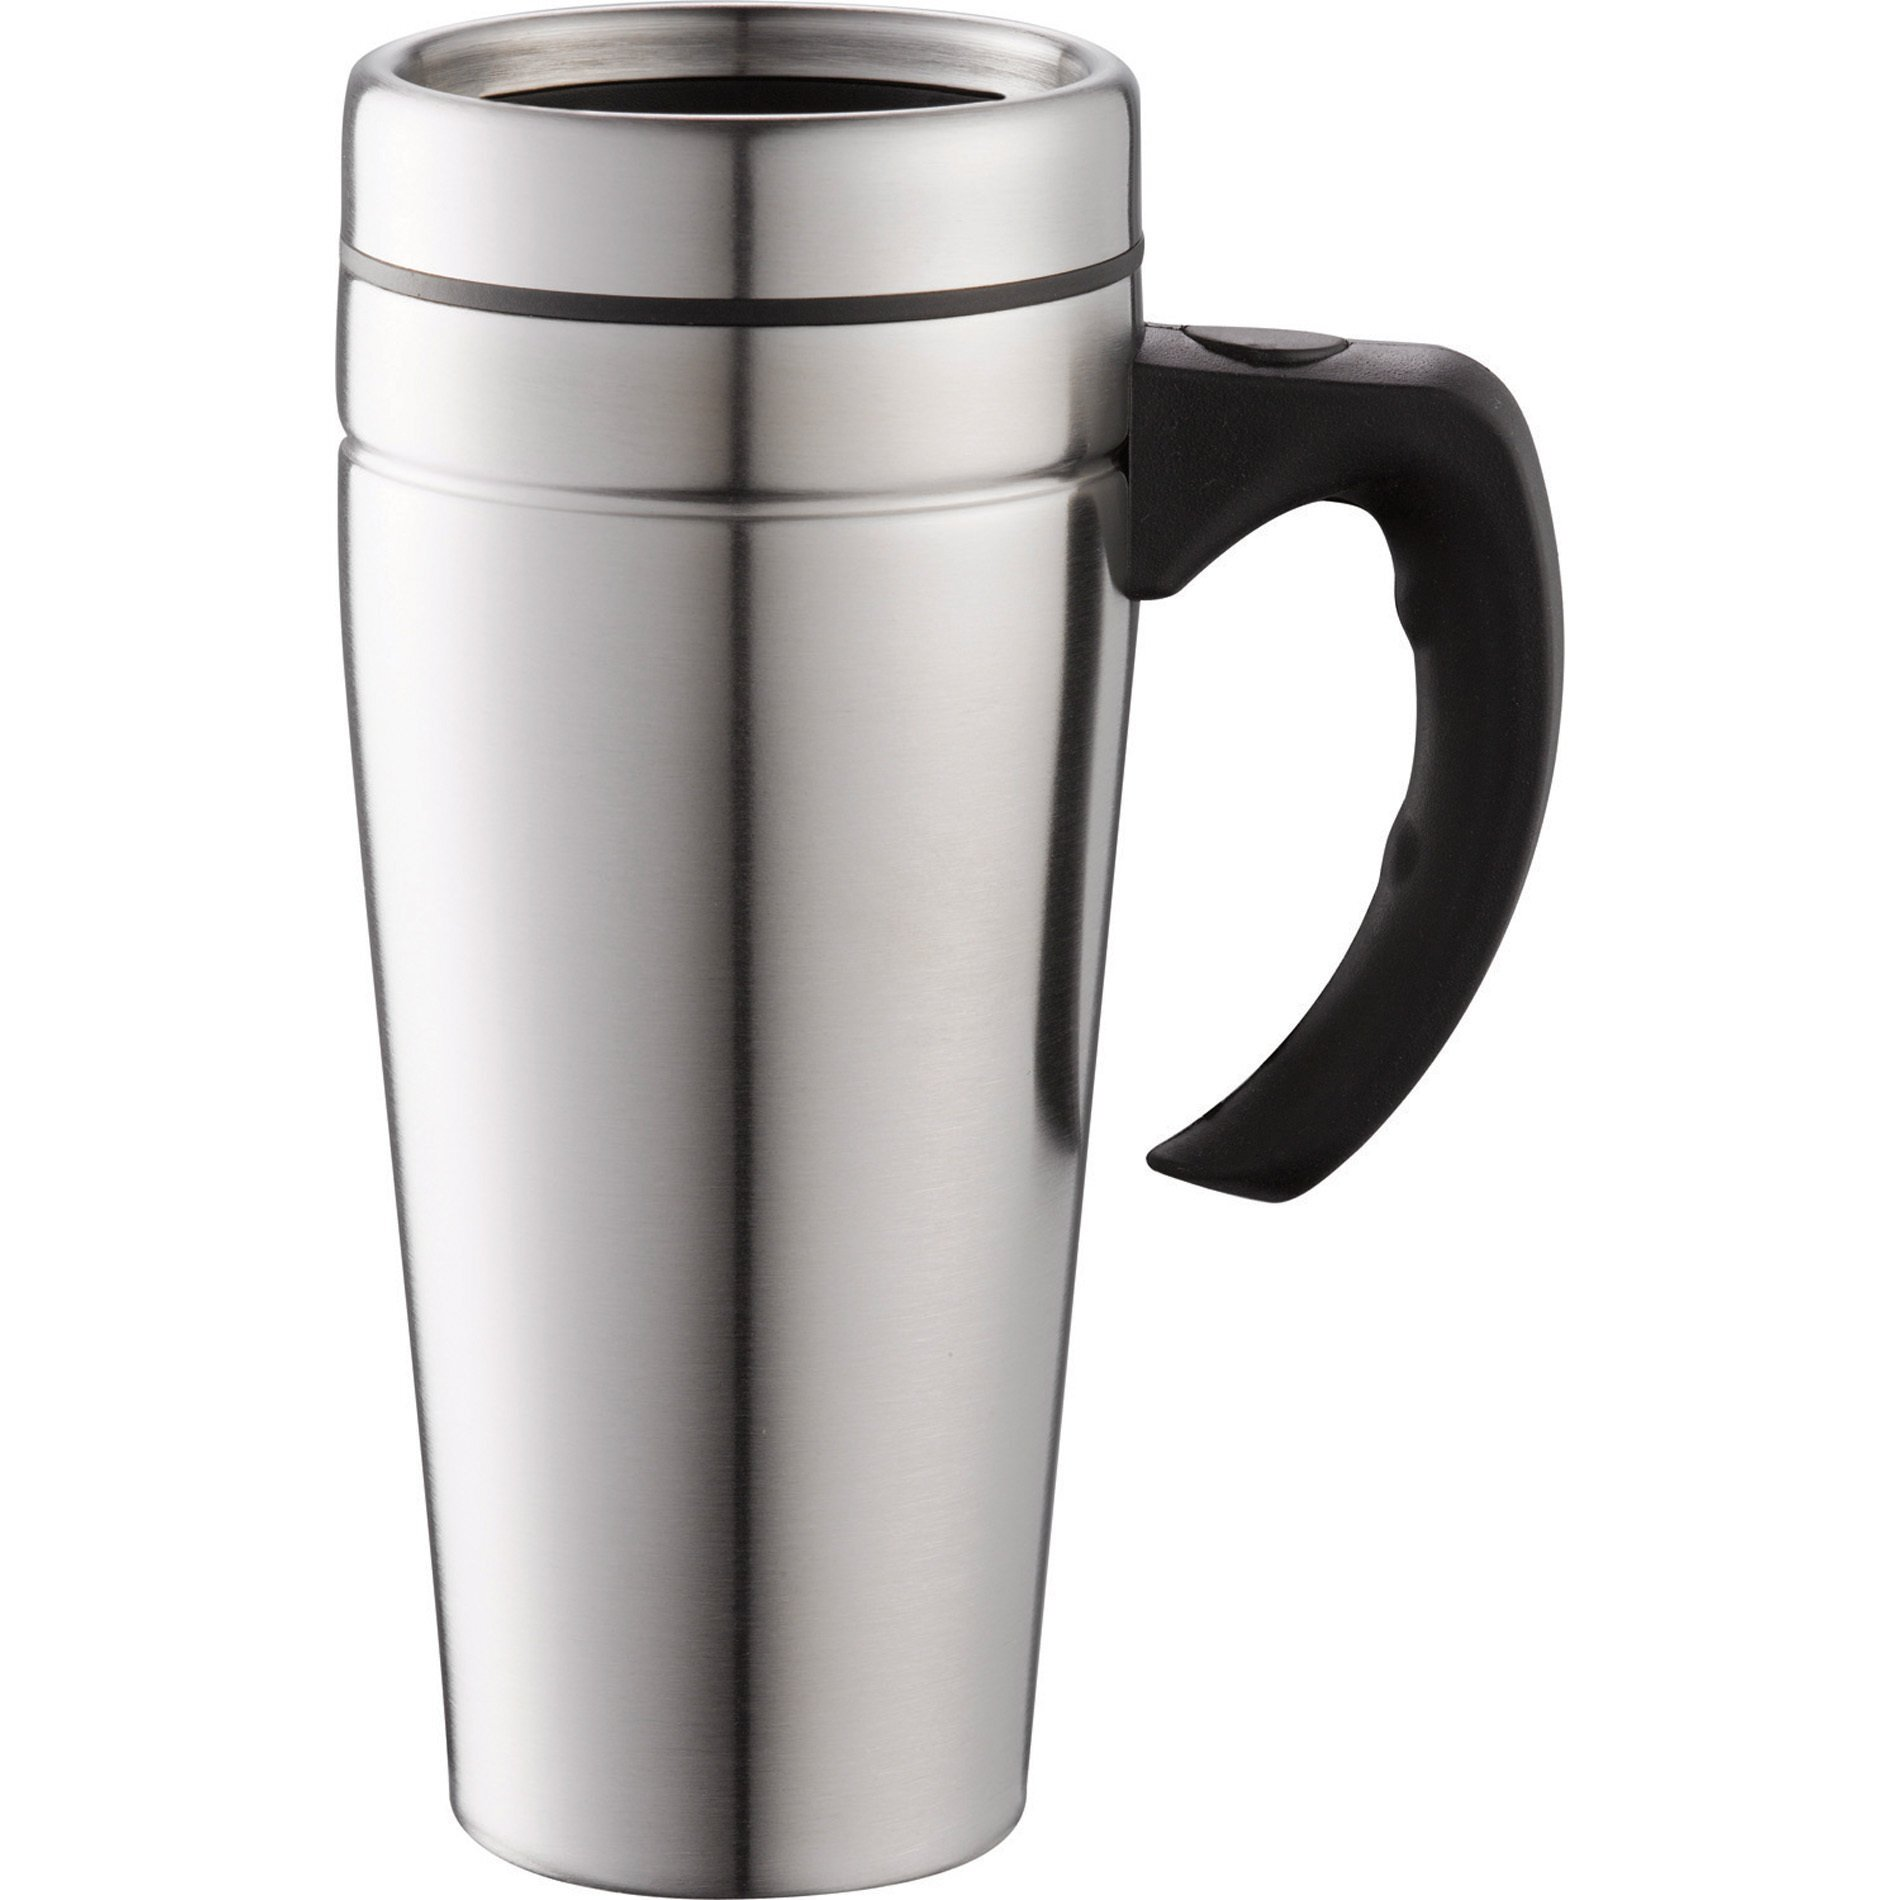 Meridian Stainless Steel Travel Mug, 16oz.